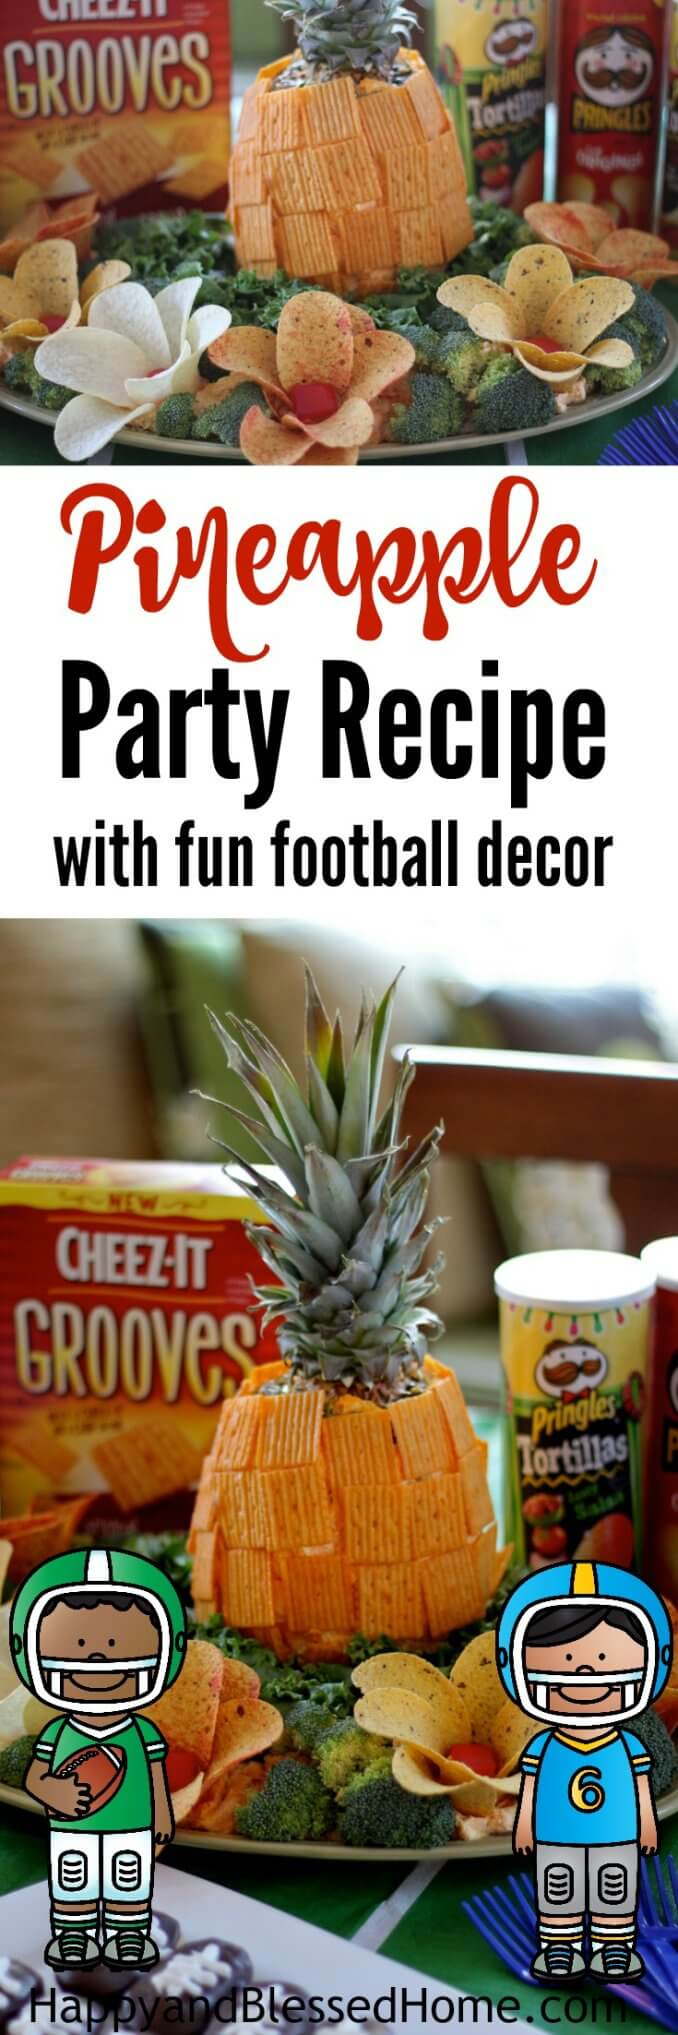 Pineapple Party Recipe with fun football decor